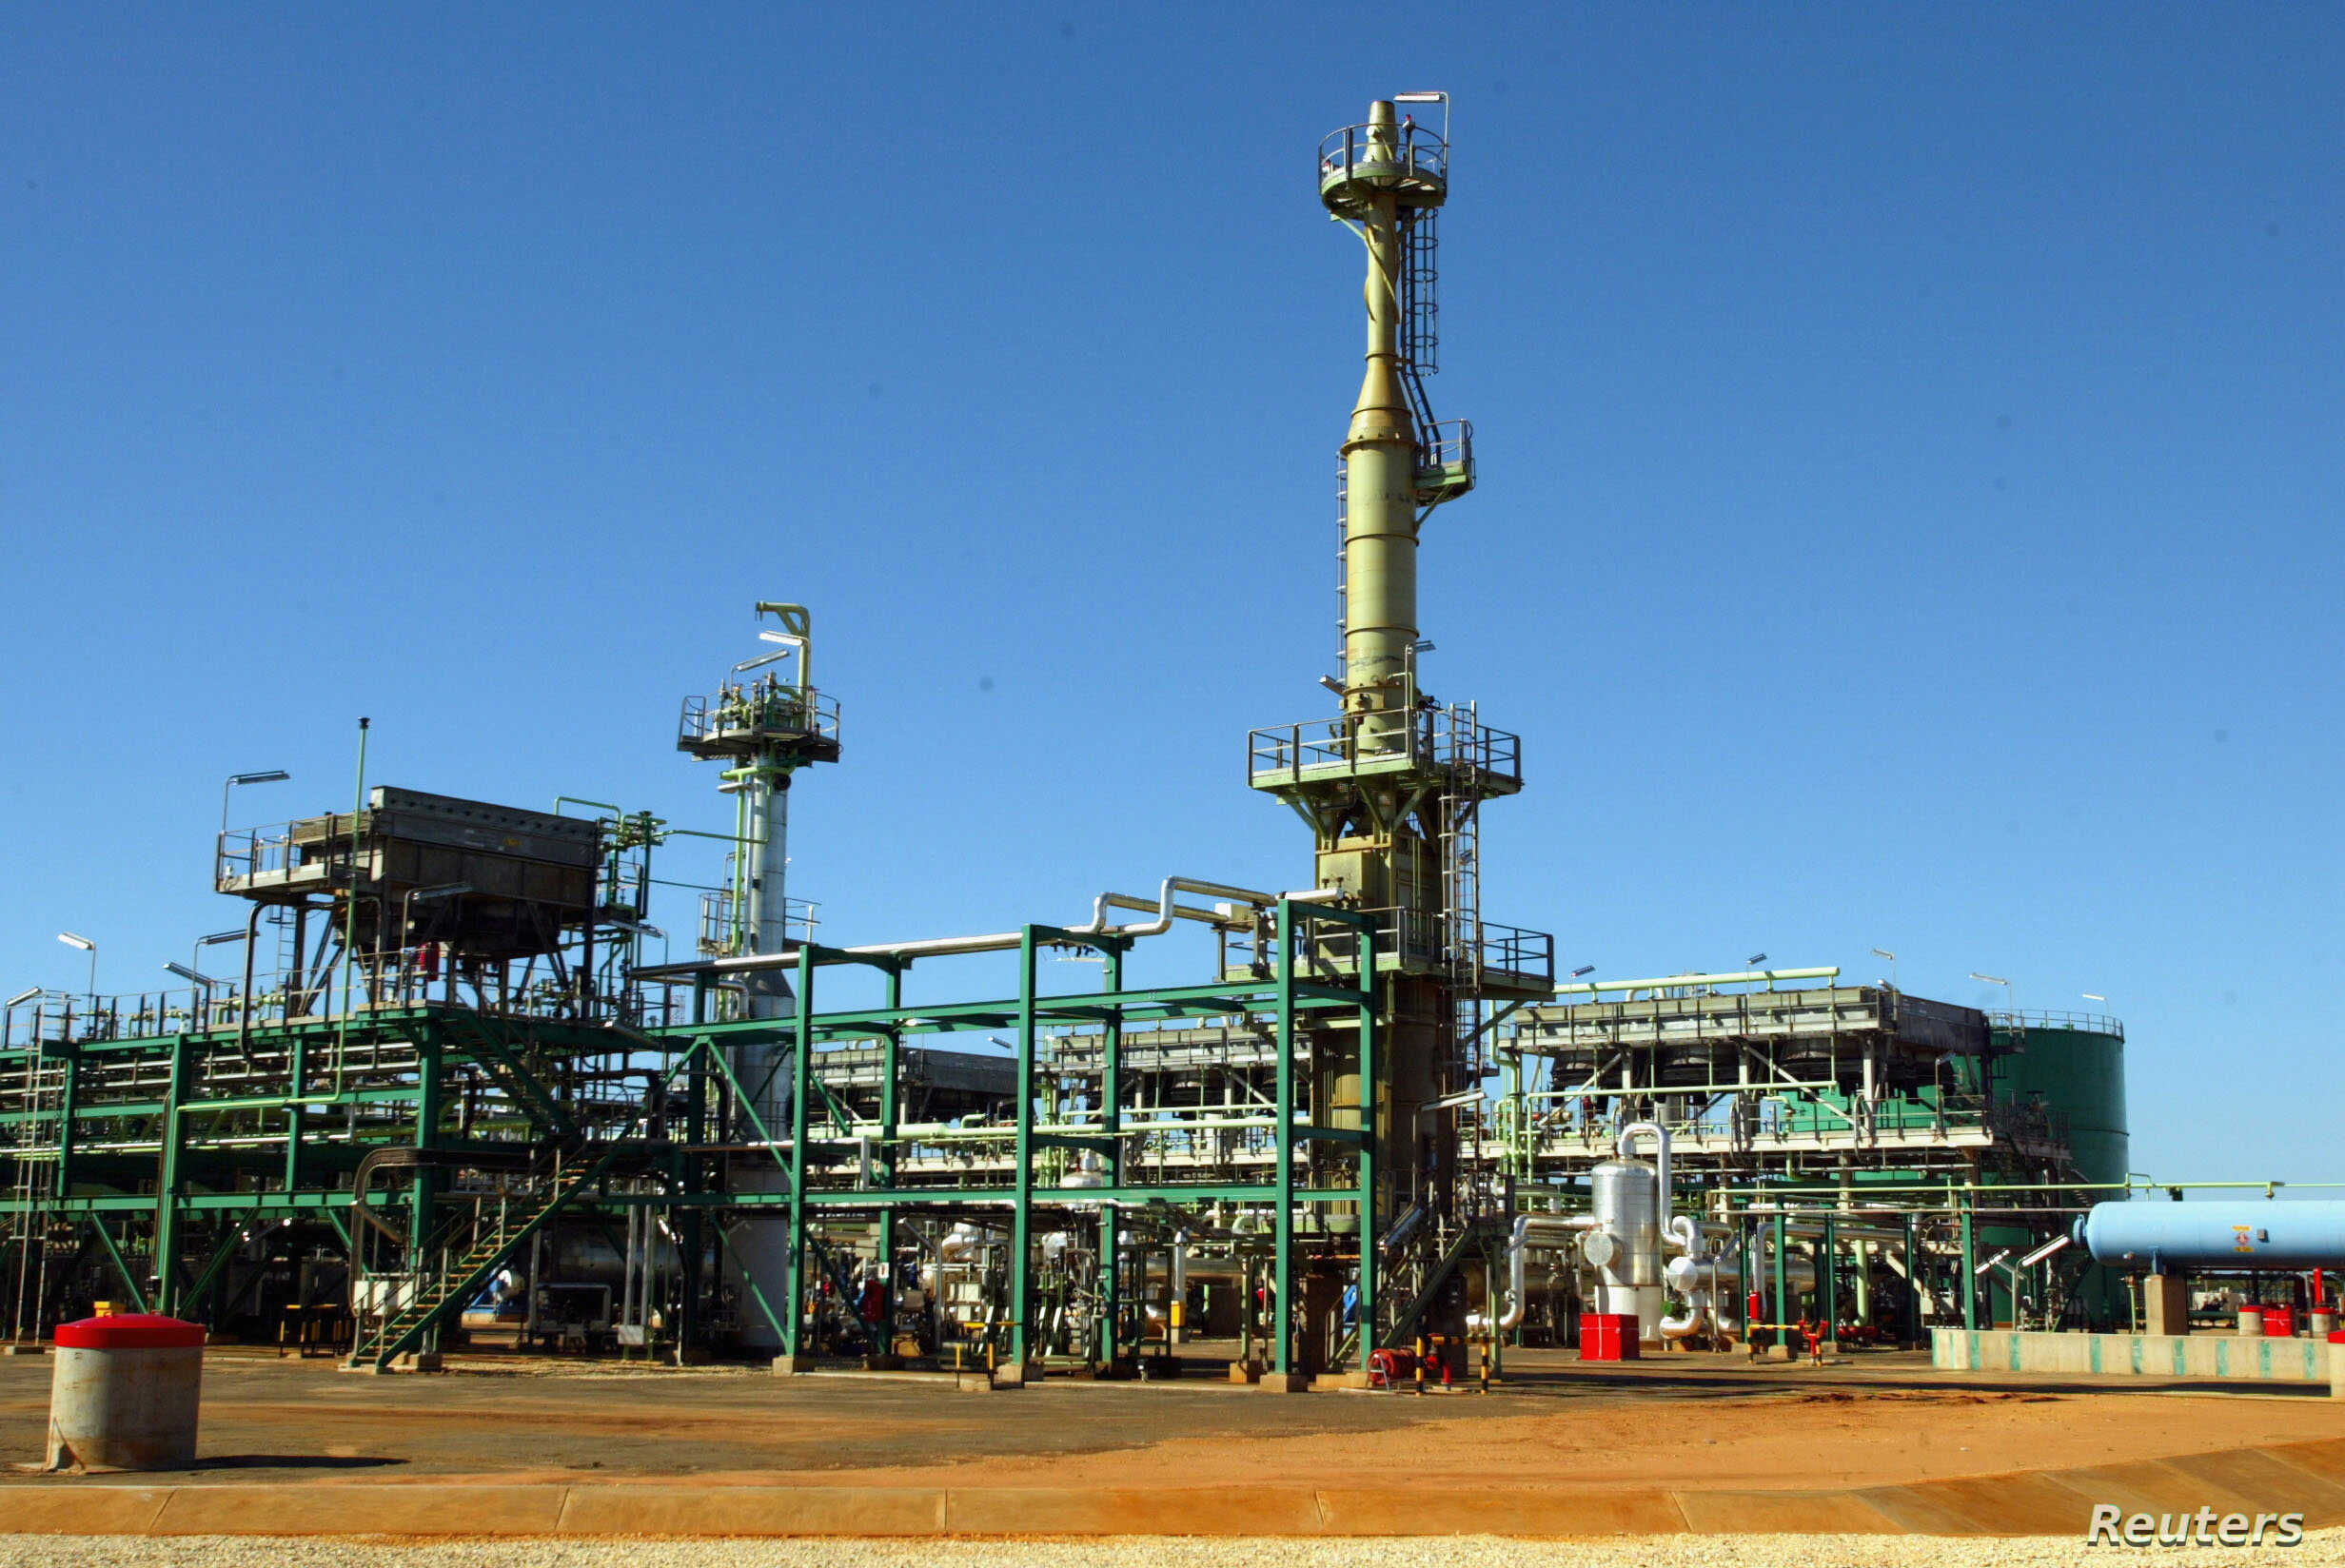 A view of Mozambique's Sasol's gas project is seen in Temane, of the Inhambane province, Mozambique June 1, 2004.